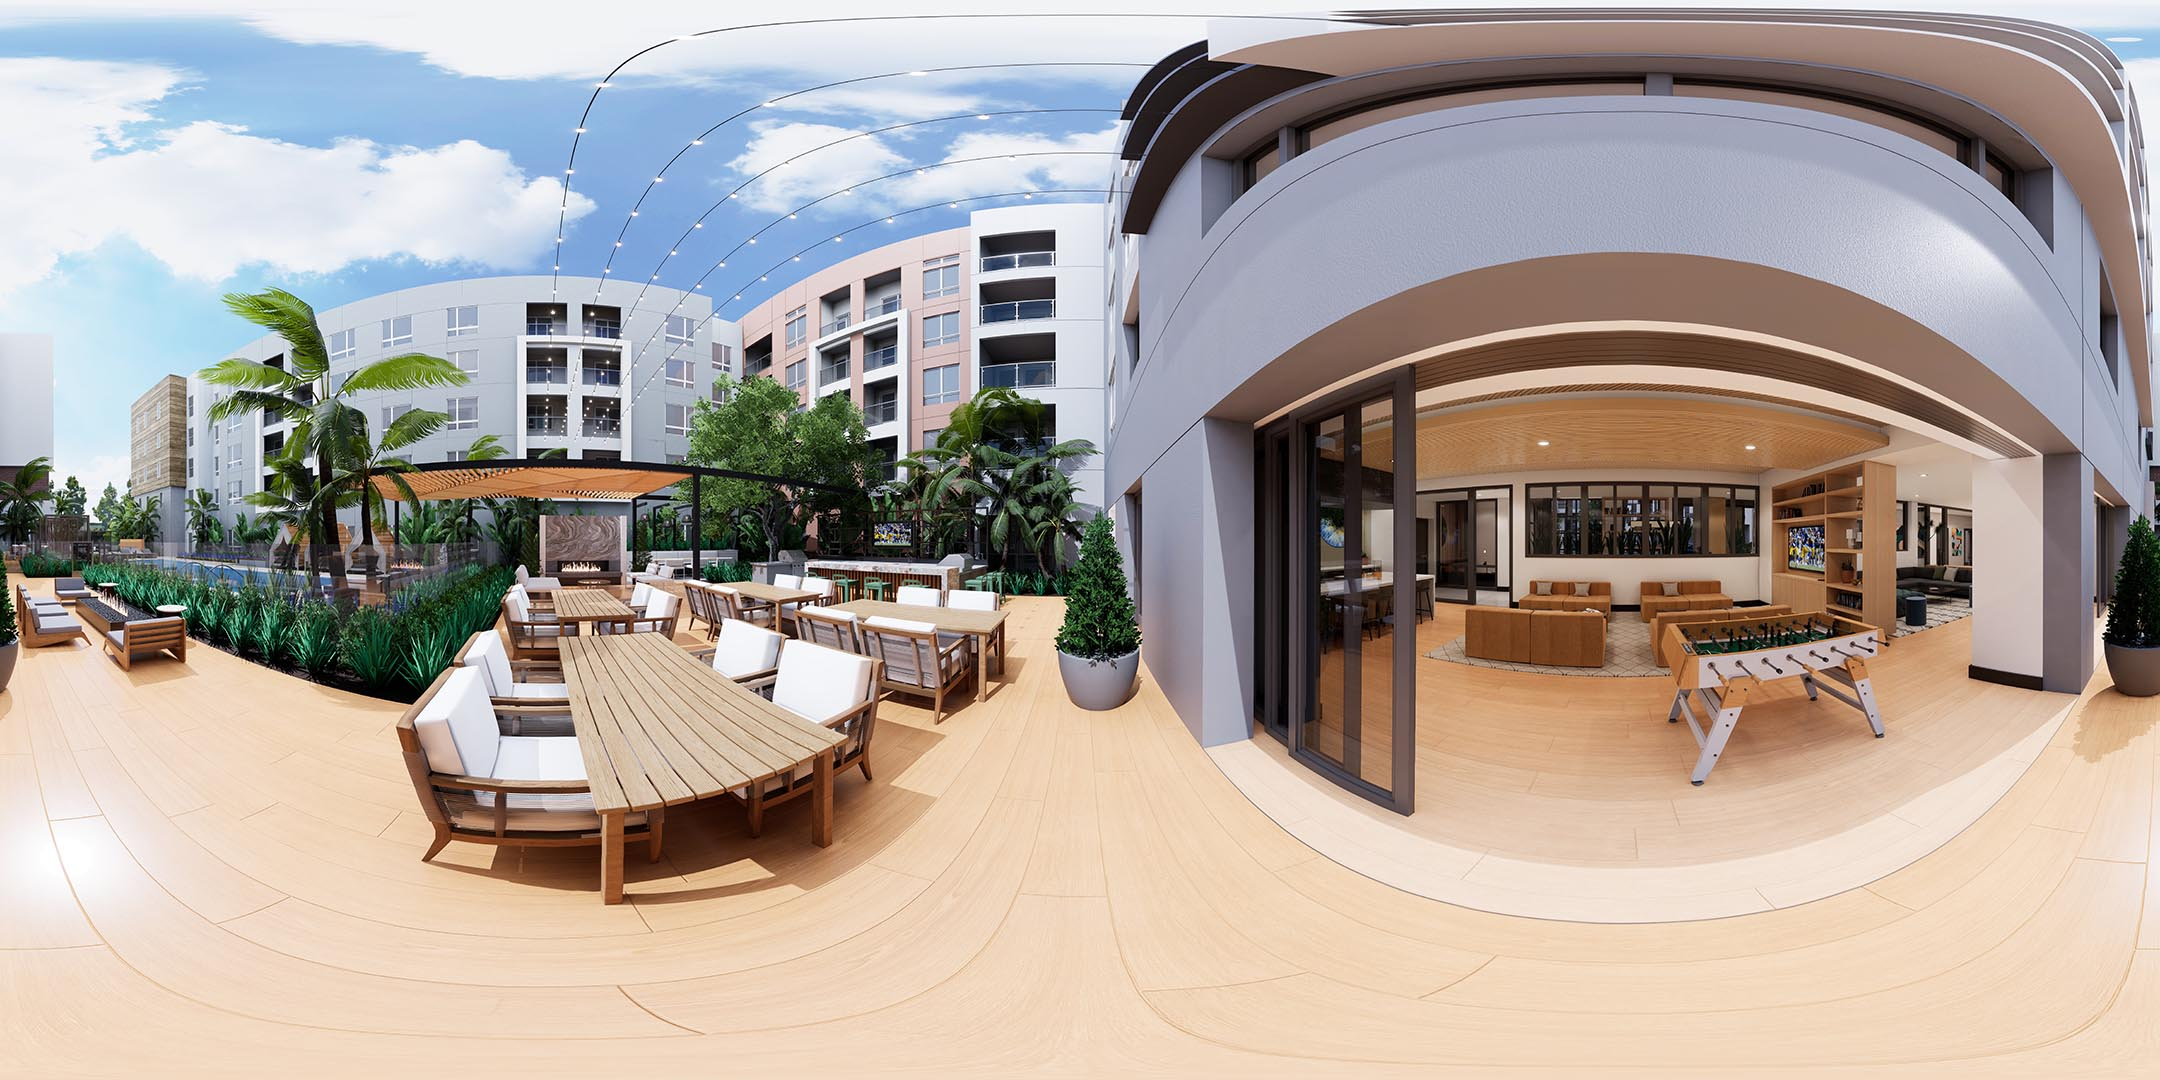 A 360 rendering of an outdoor courtyard space